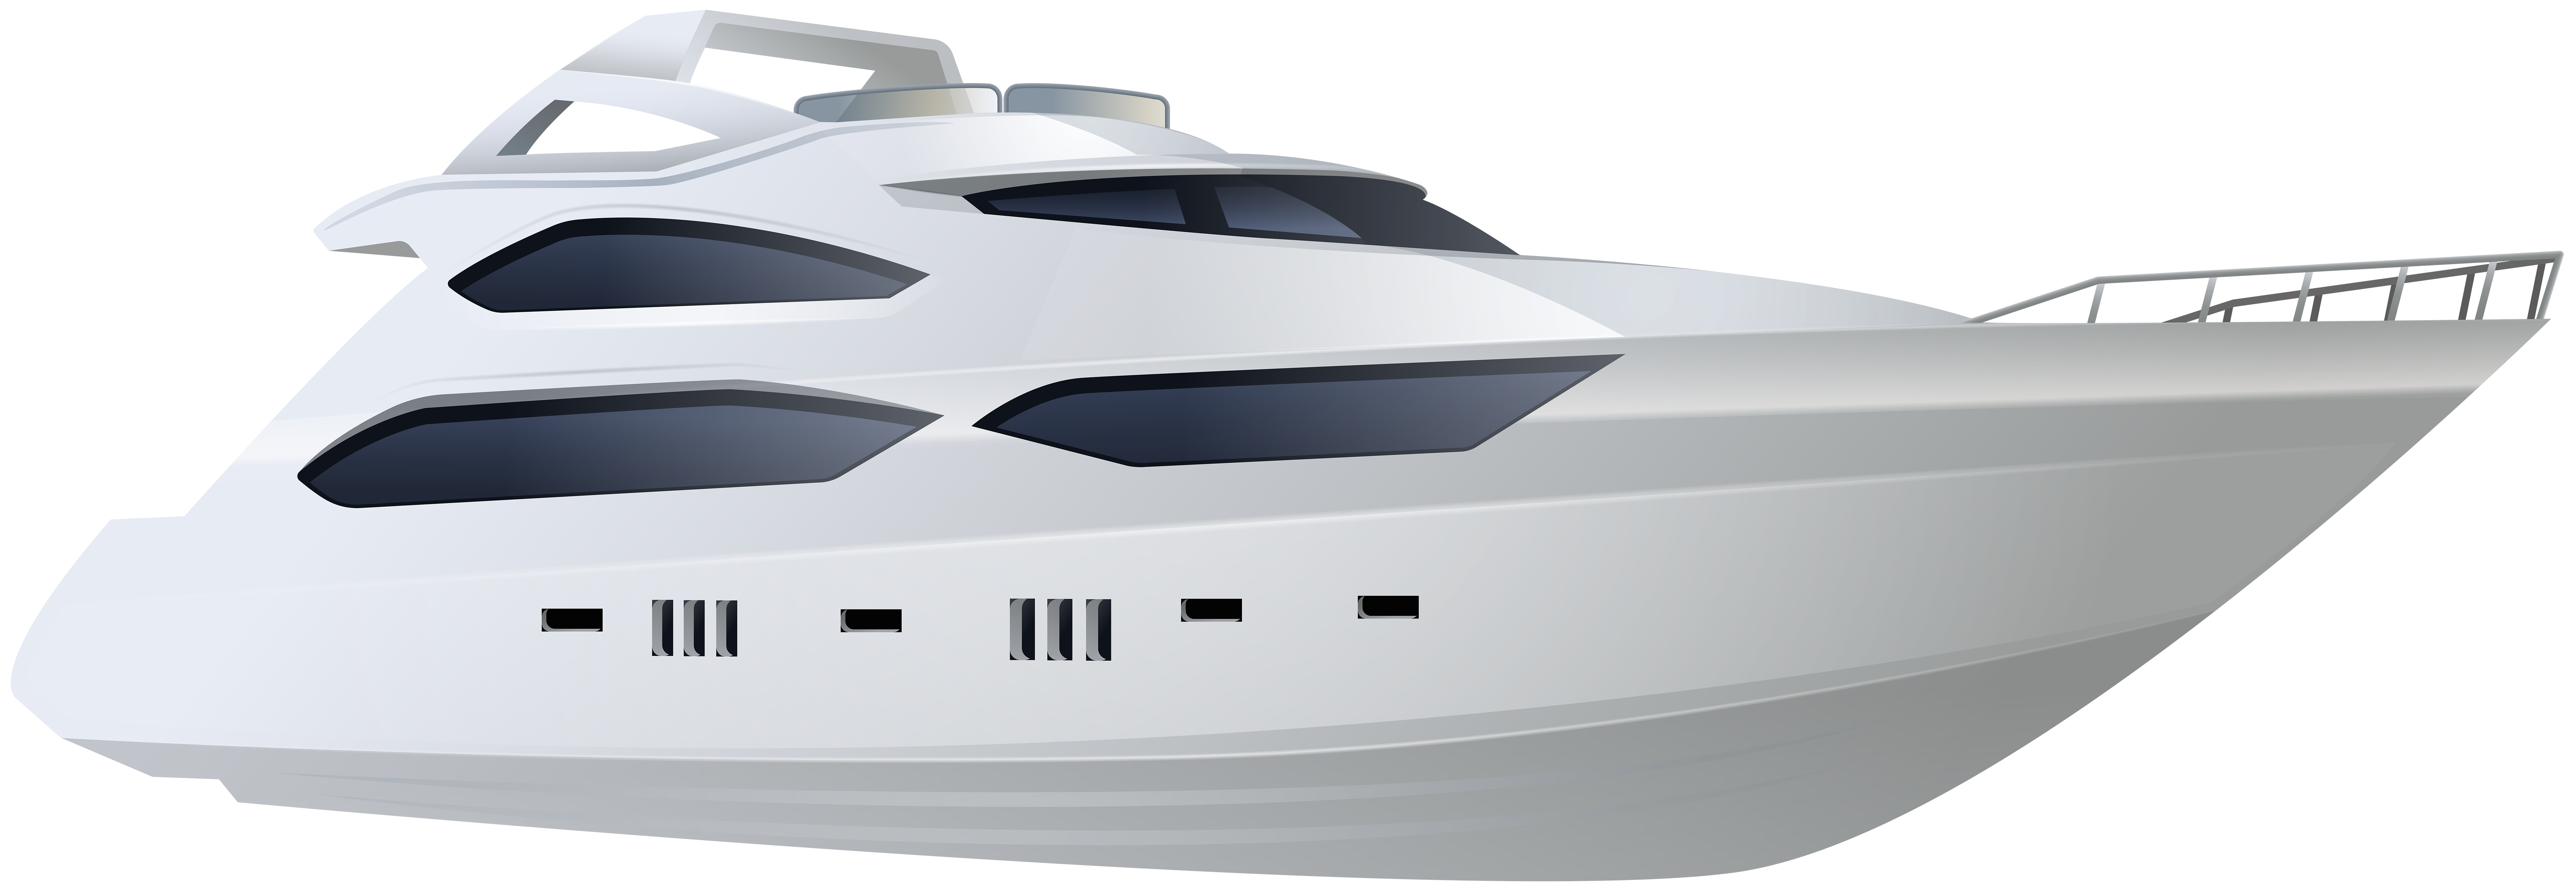 Yacht clipart ppng image free library Yacht PNG Clip Art Image | Gallery Yopriceville - High ... image free library